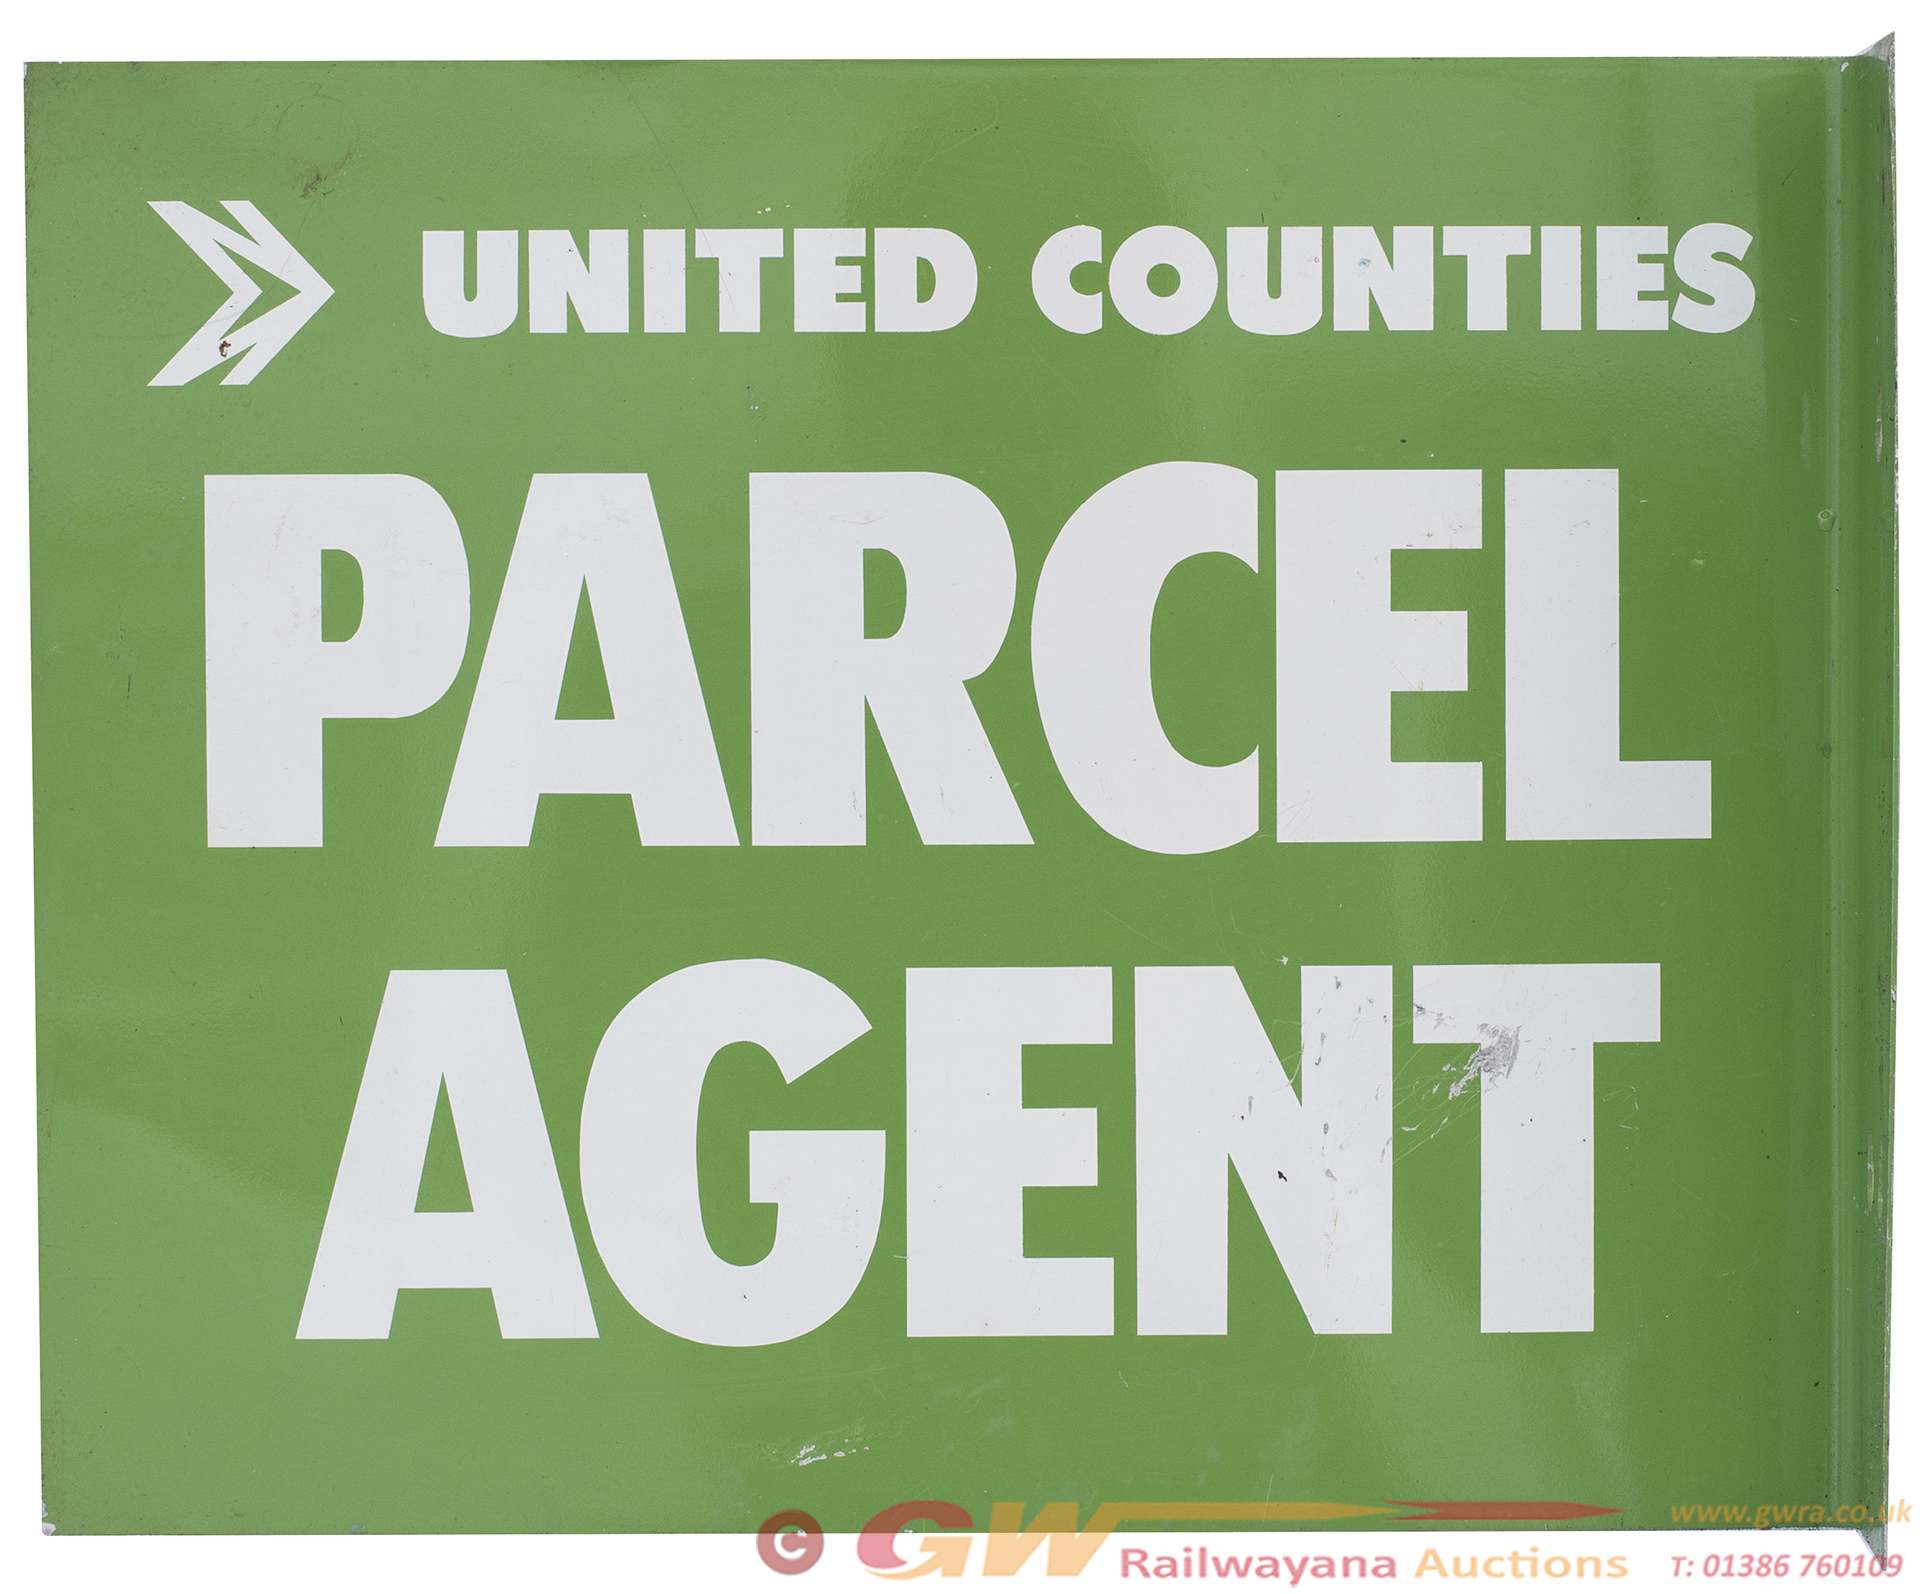 Motoring Bus Sign UNITED COUNTIES PARCEL AGENT.